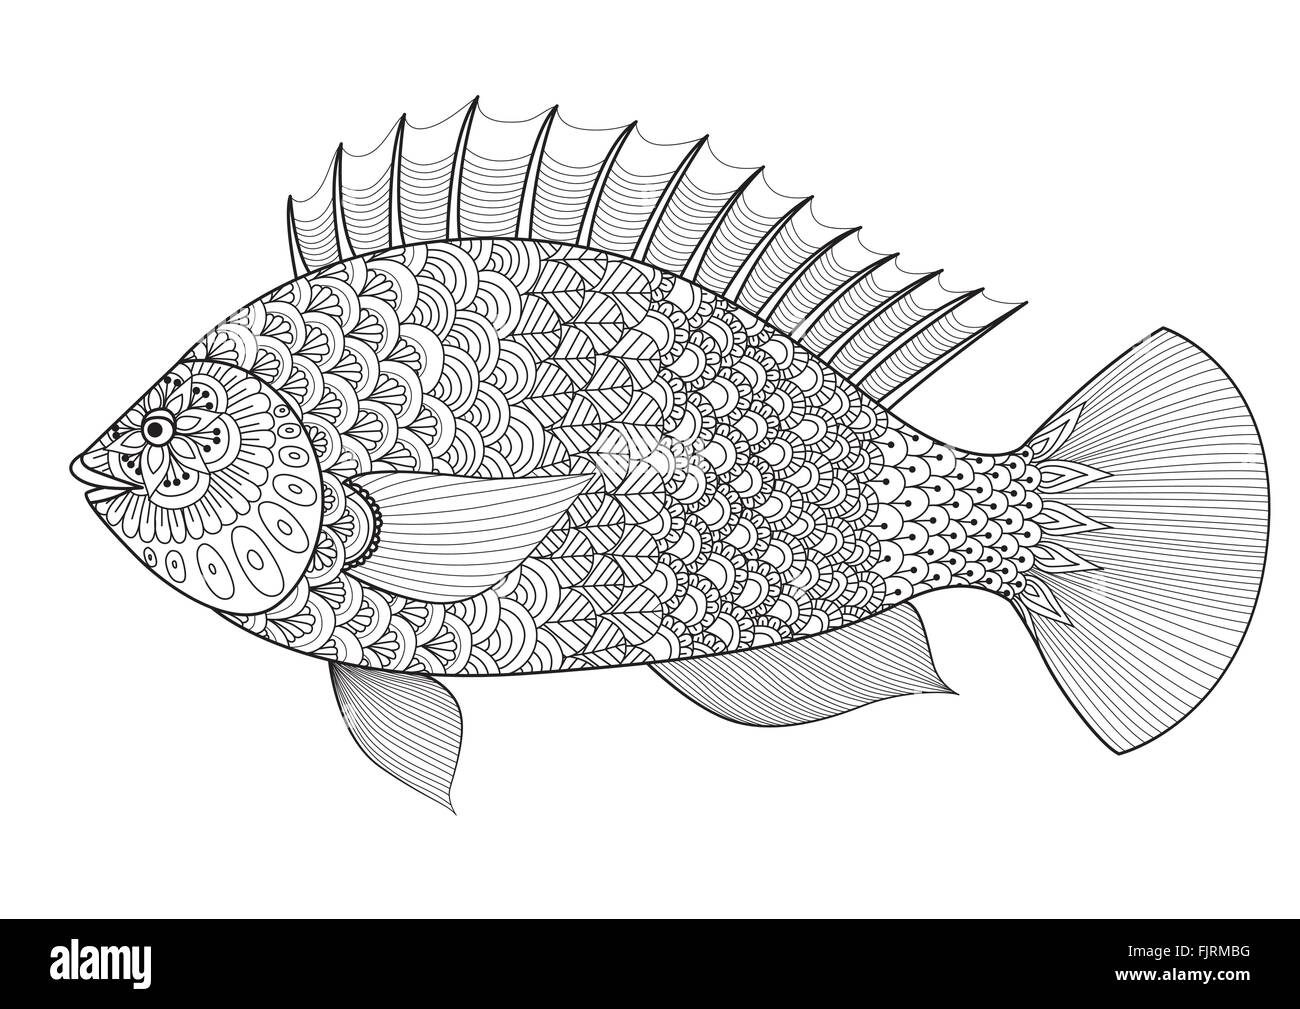 Shirt design book - Fish Line Art Design For Coloring Book For Adult Tattoo T Shirt Design Element For Design And So On